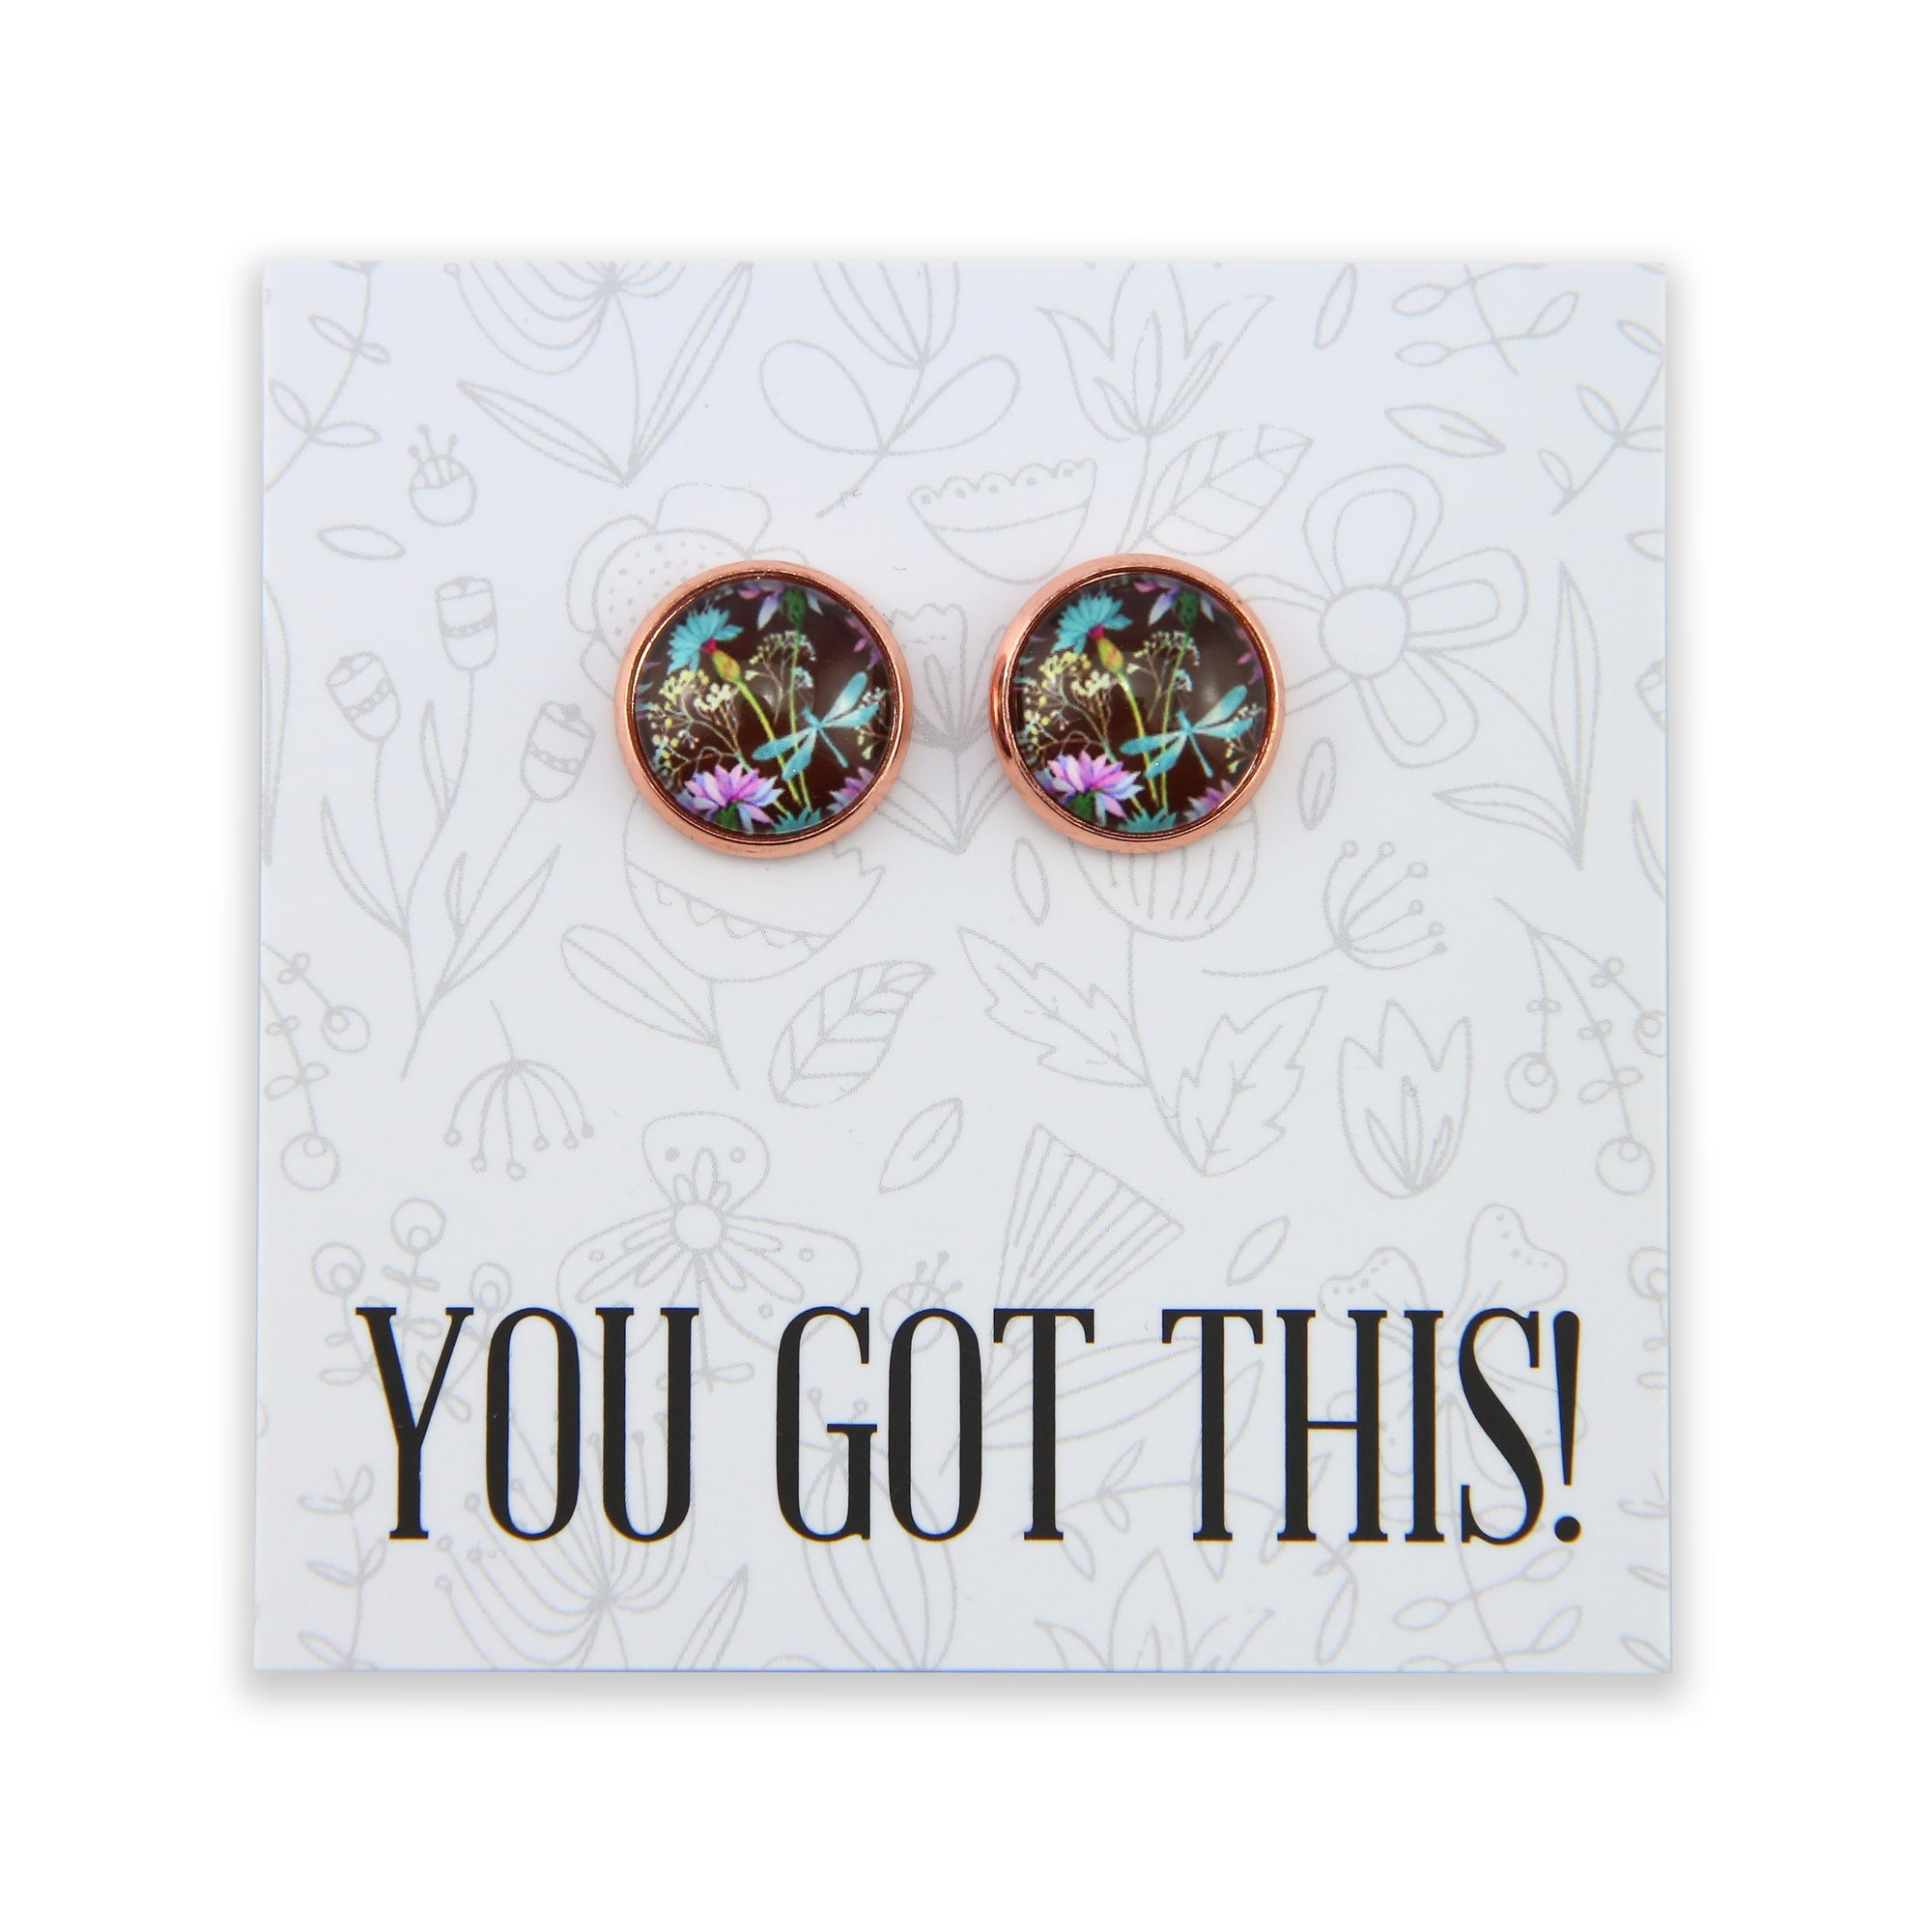 Wildflower Collection - You Got This- Rose Gold surround Circle Studs - Dragonfly Grove (8712-R)